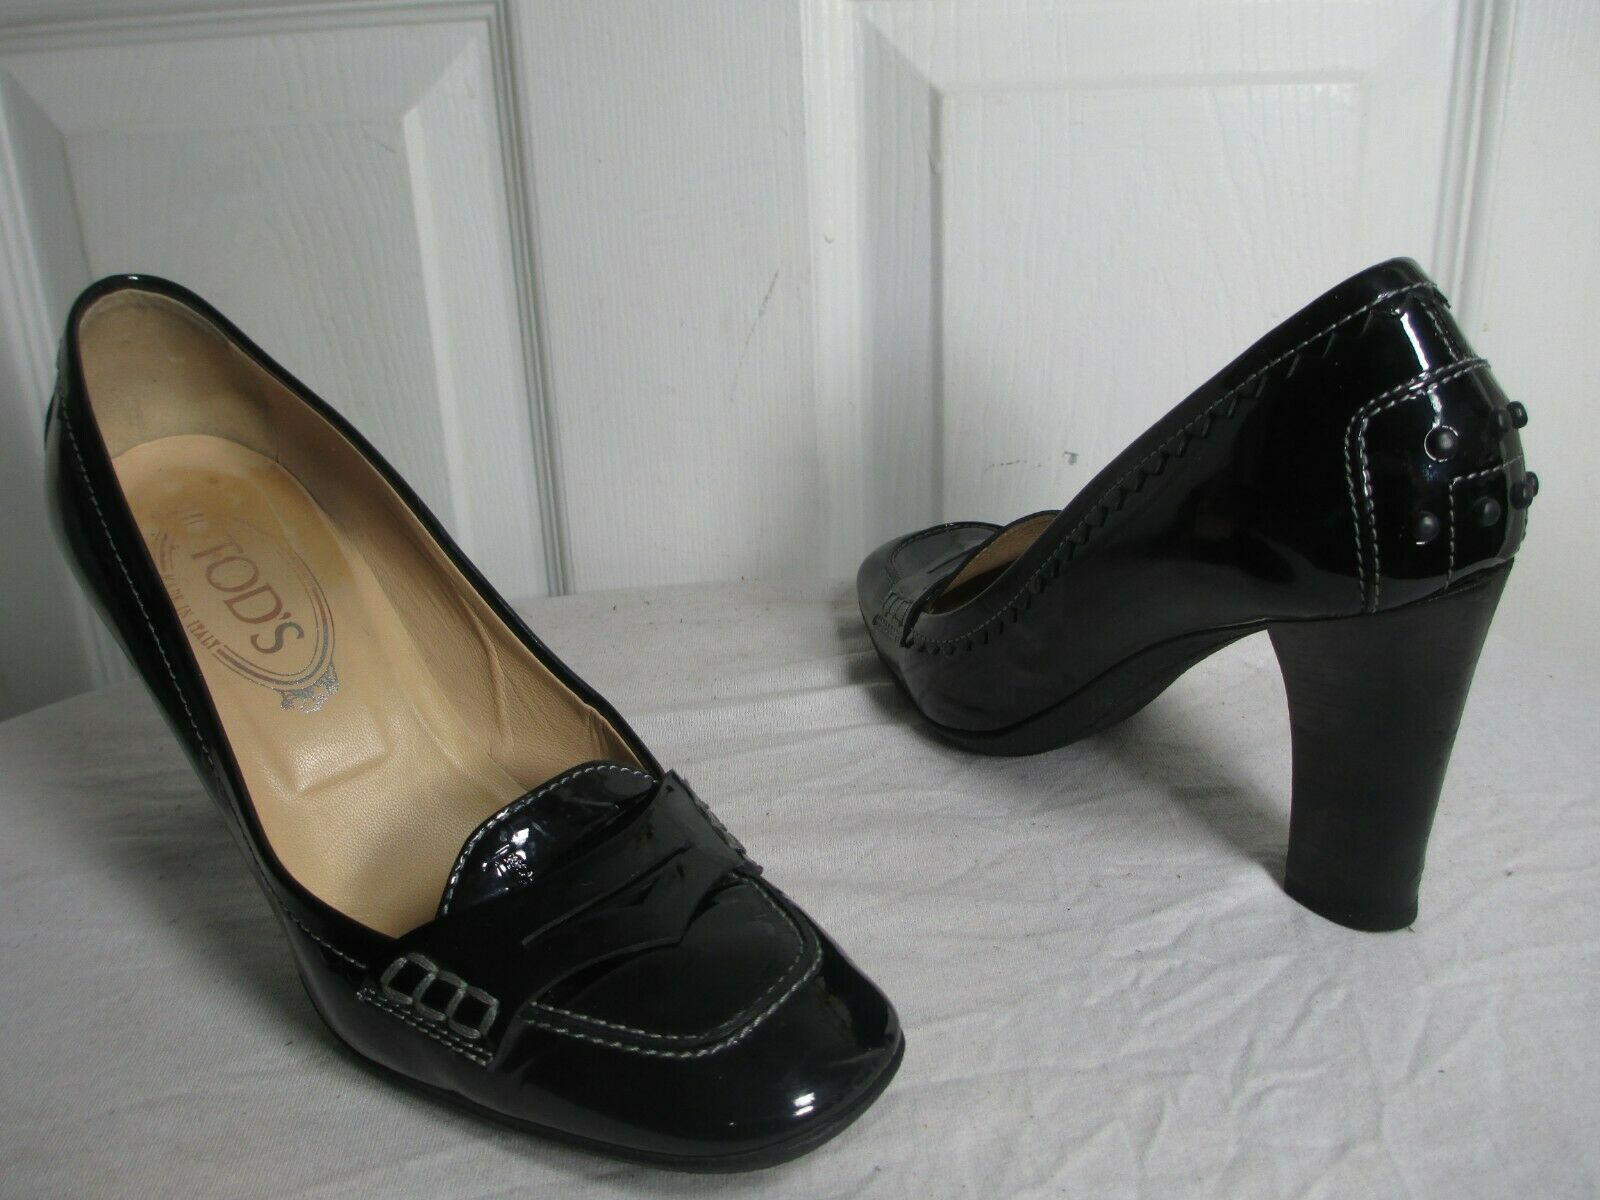 TOD'S donna'S nero PATENT LEATHER HEELS LOAFERS scarpe Dimensione 7 MADE IN ITALY